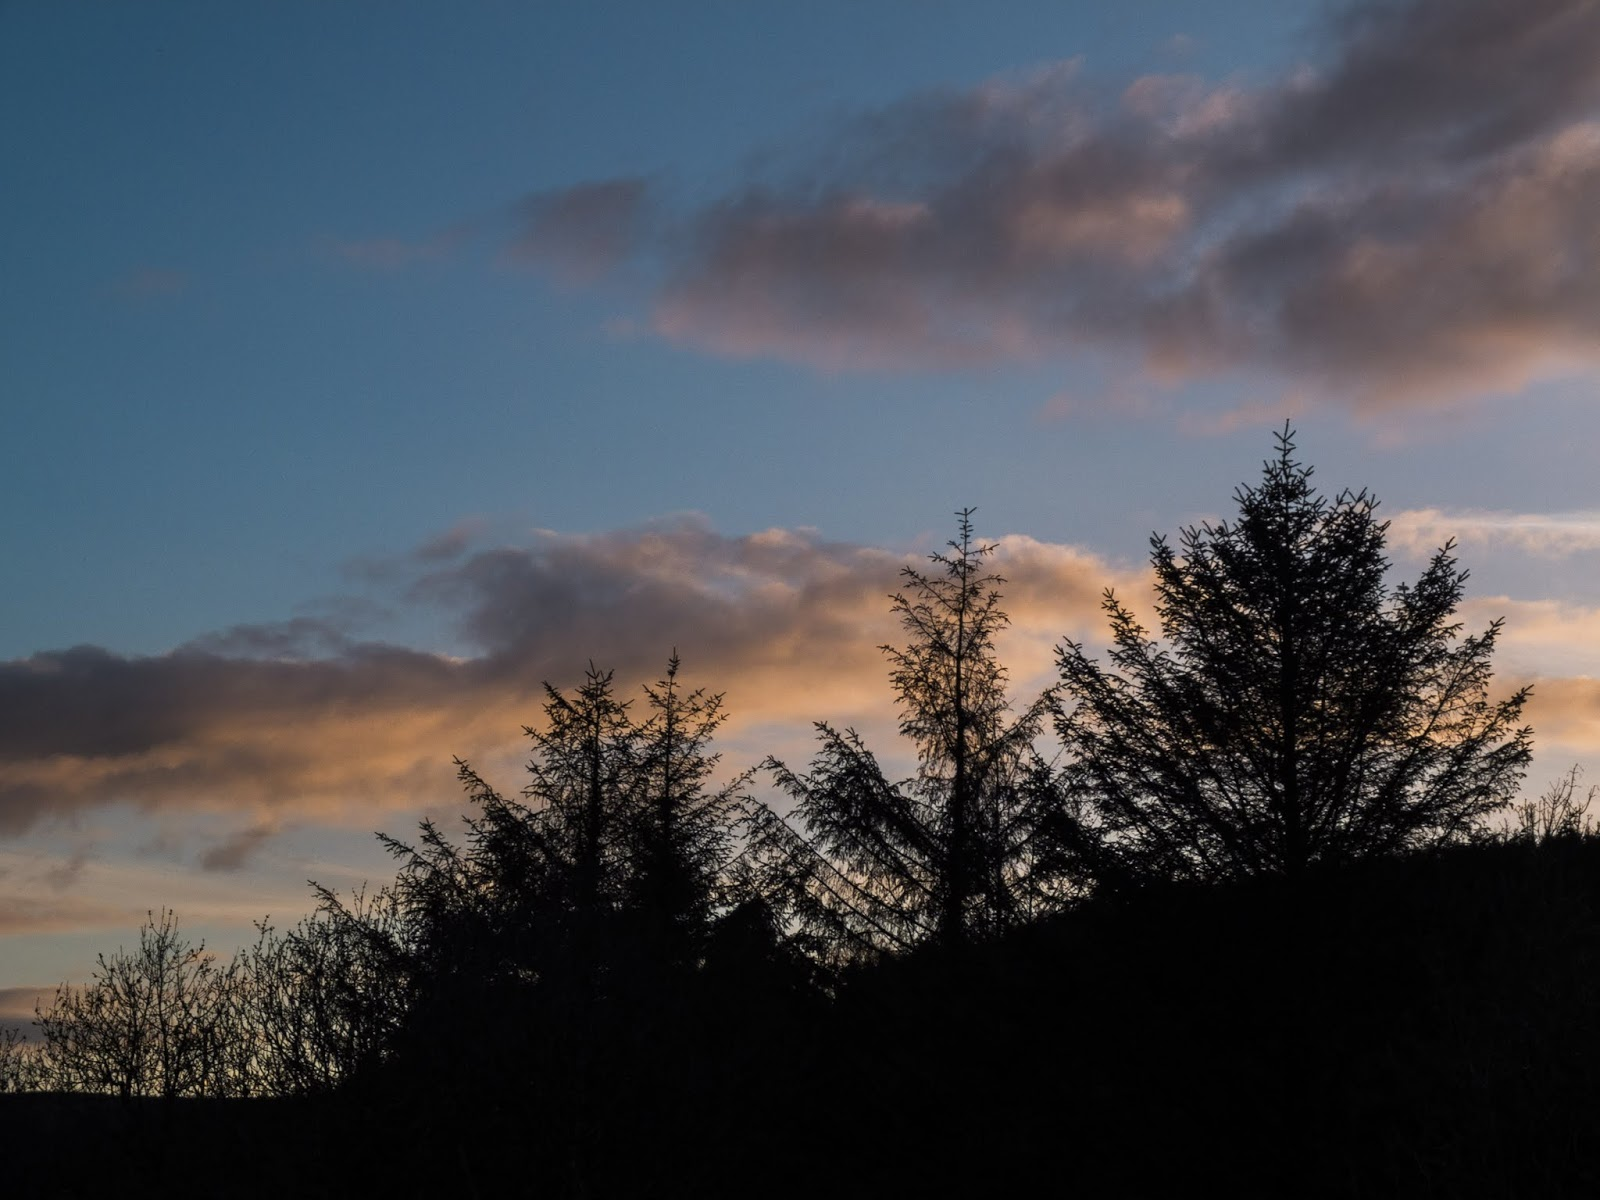 Conifer trees on a mountain at sunset with some fluffy clouds in Co.Cork, Ireland.